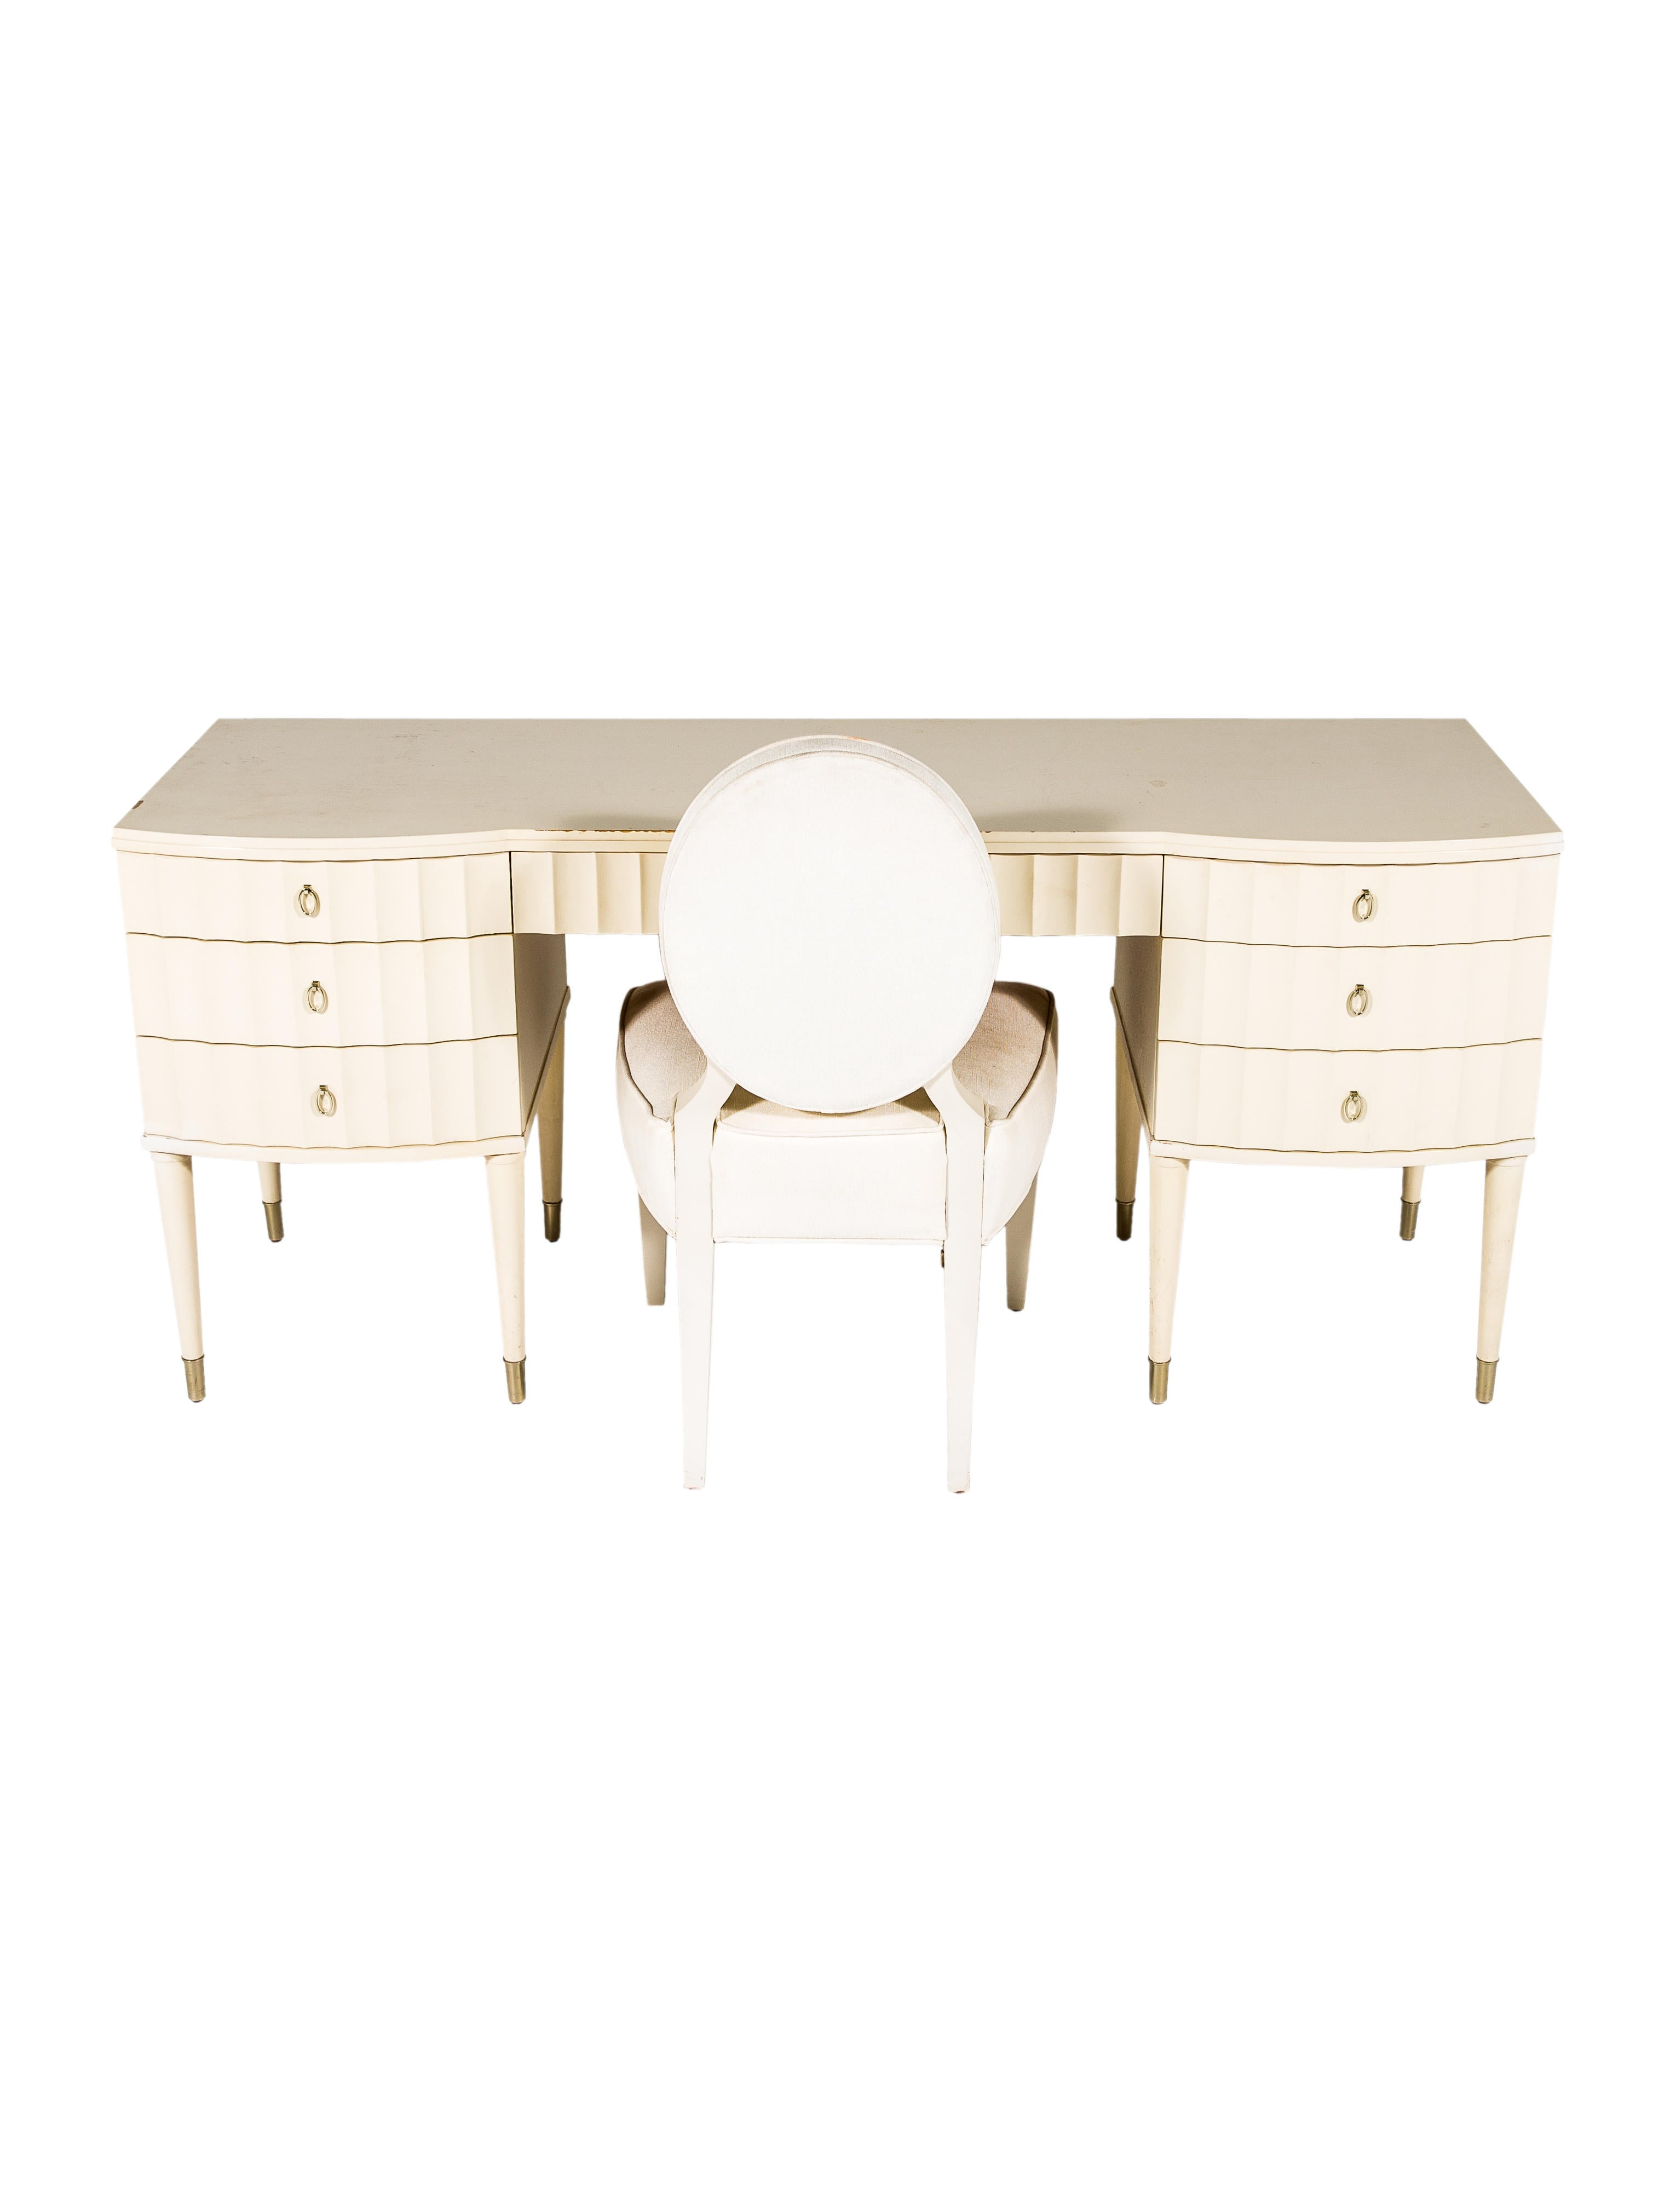 Barbara Barry For Henredon 2 Piece Las Desk And Chair